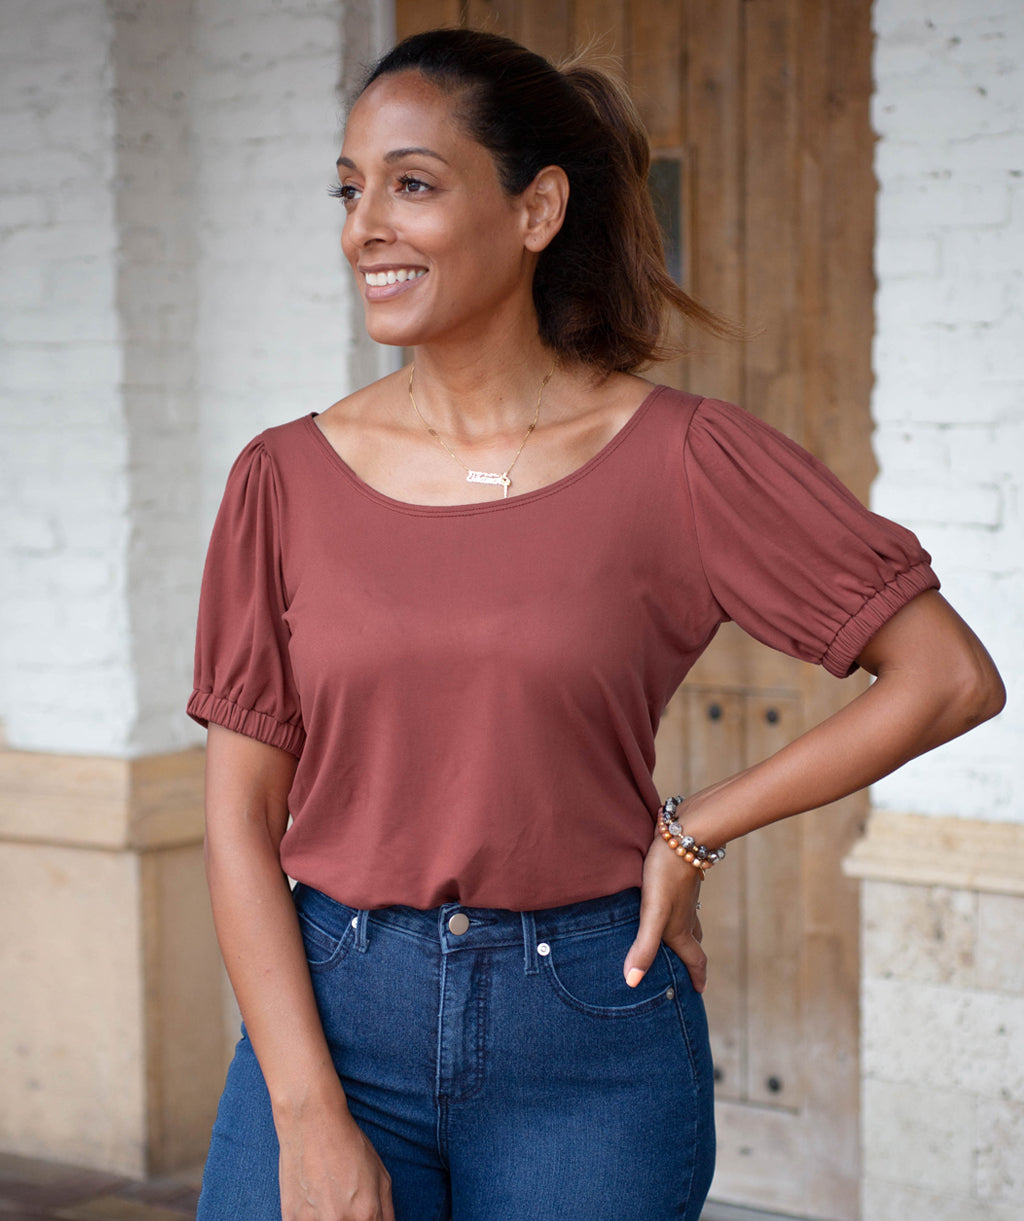 BROADWAY puff sleeve top in Dusty Mauve